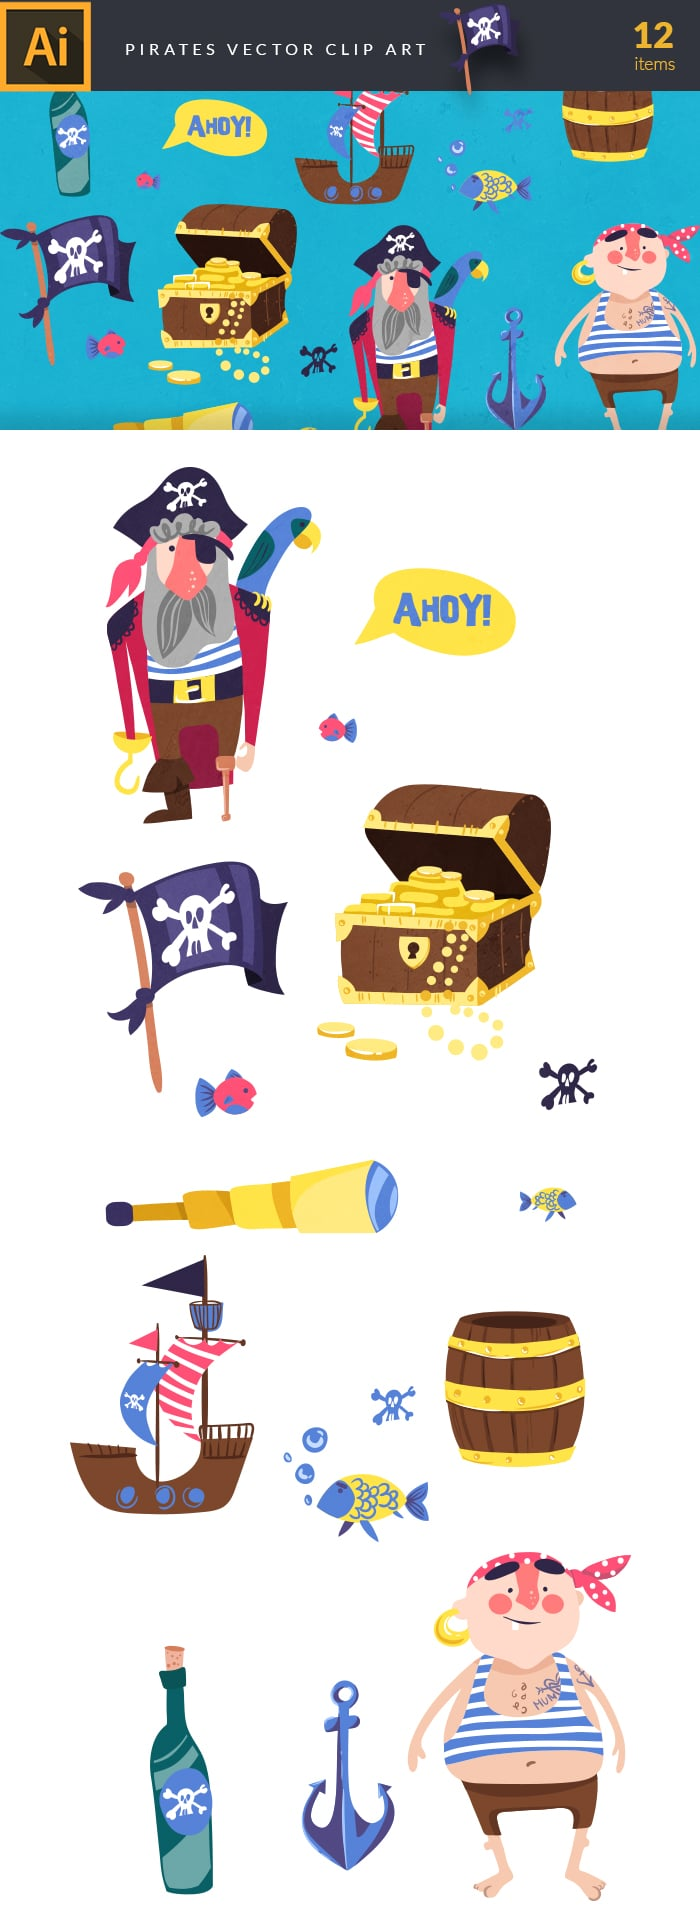 400+ Amazing Cartoon Vector Clip Art with 27 different sets - $10! - pirates large